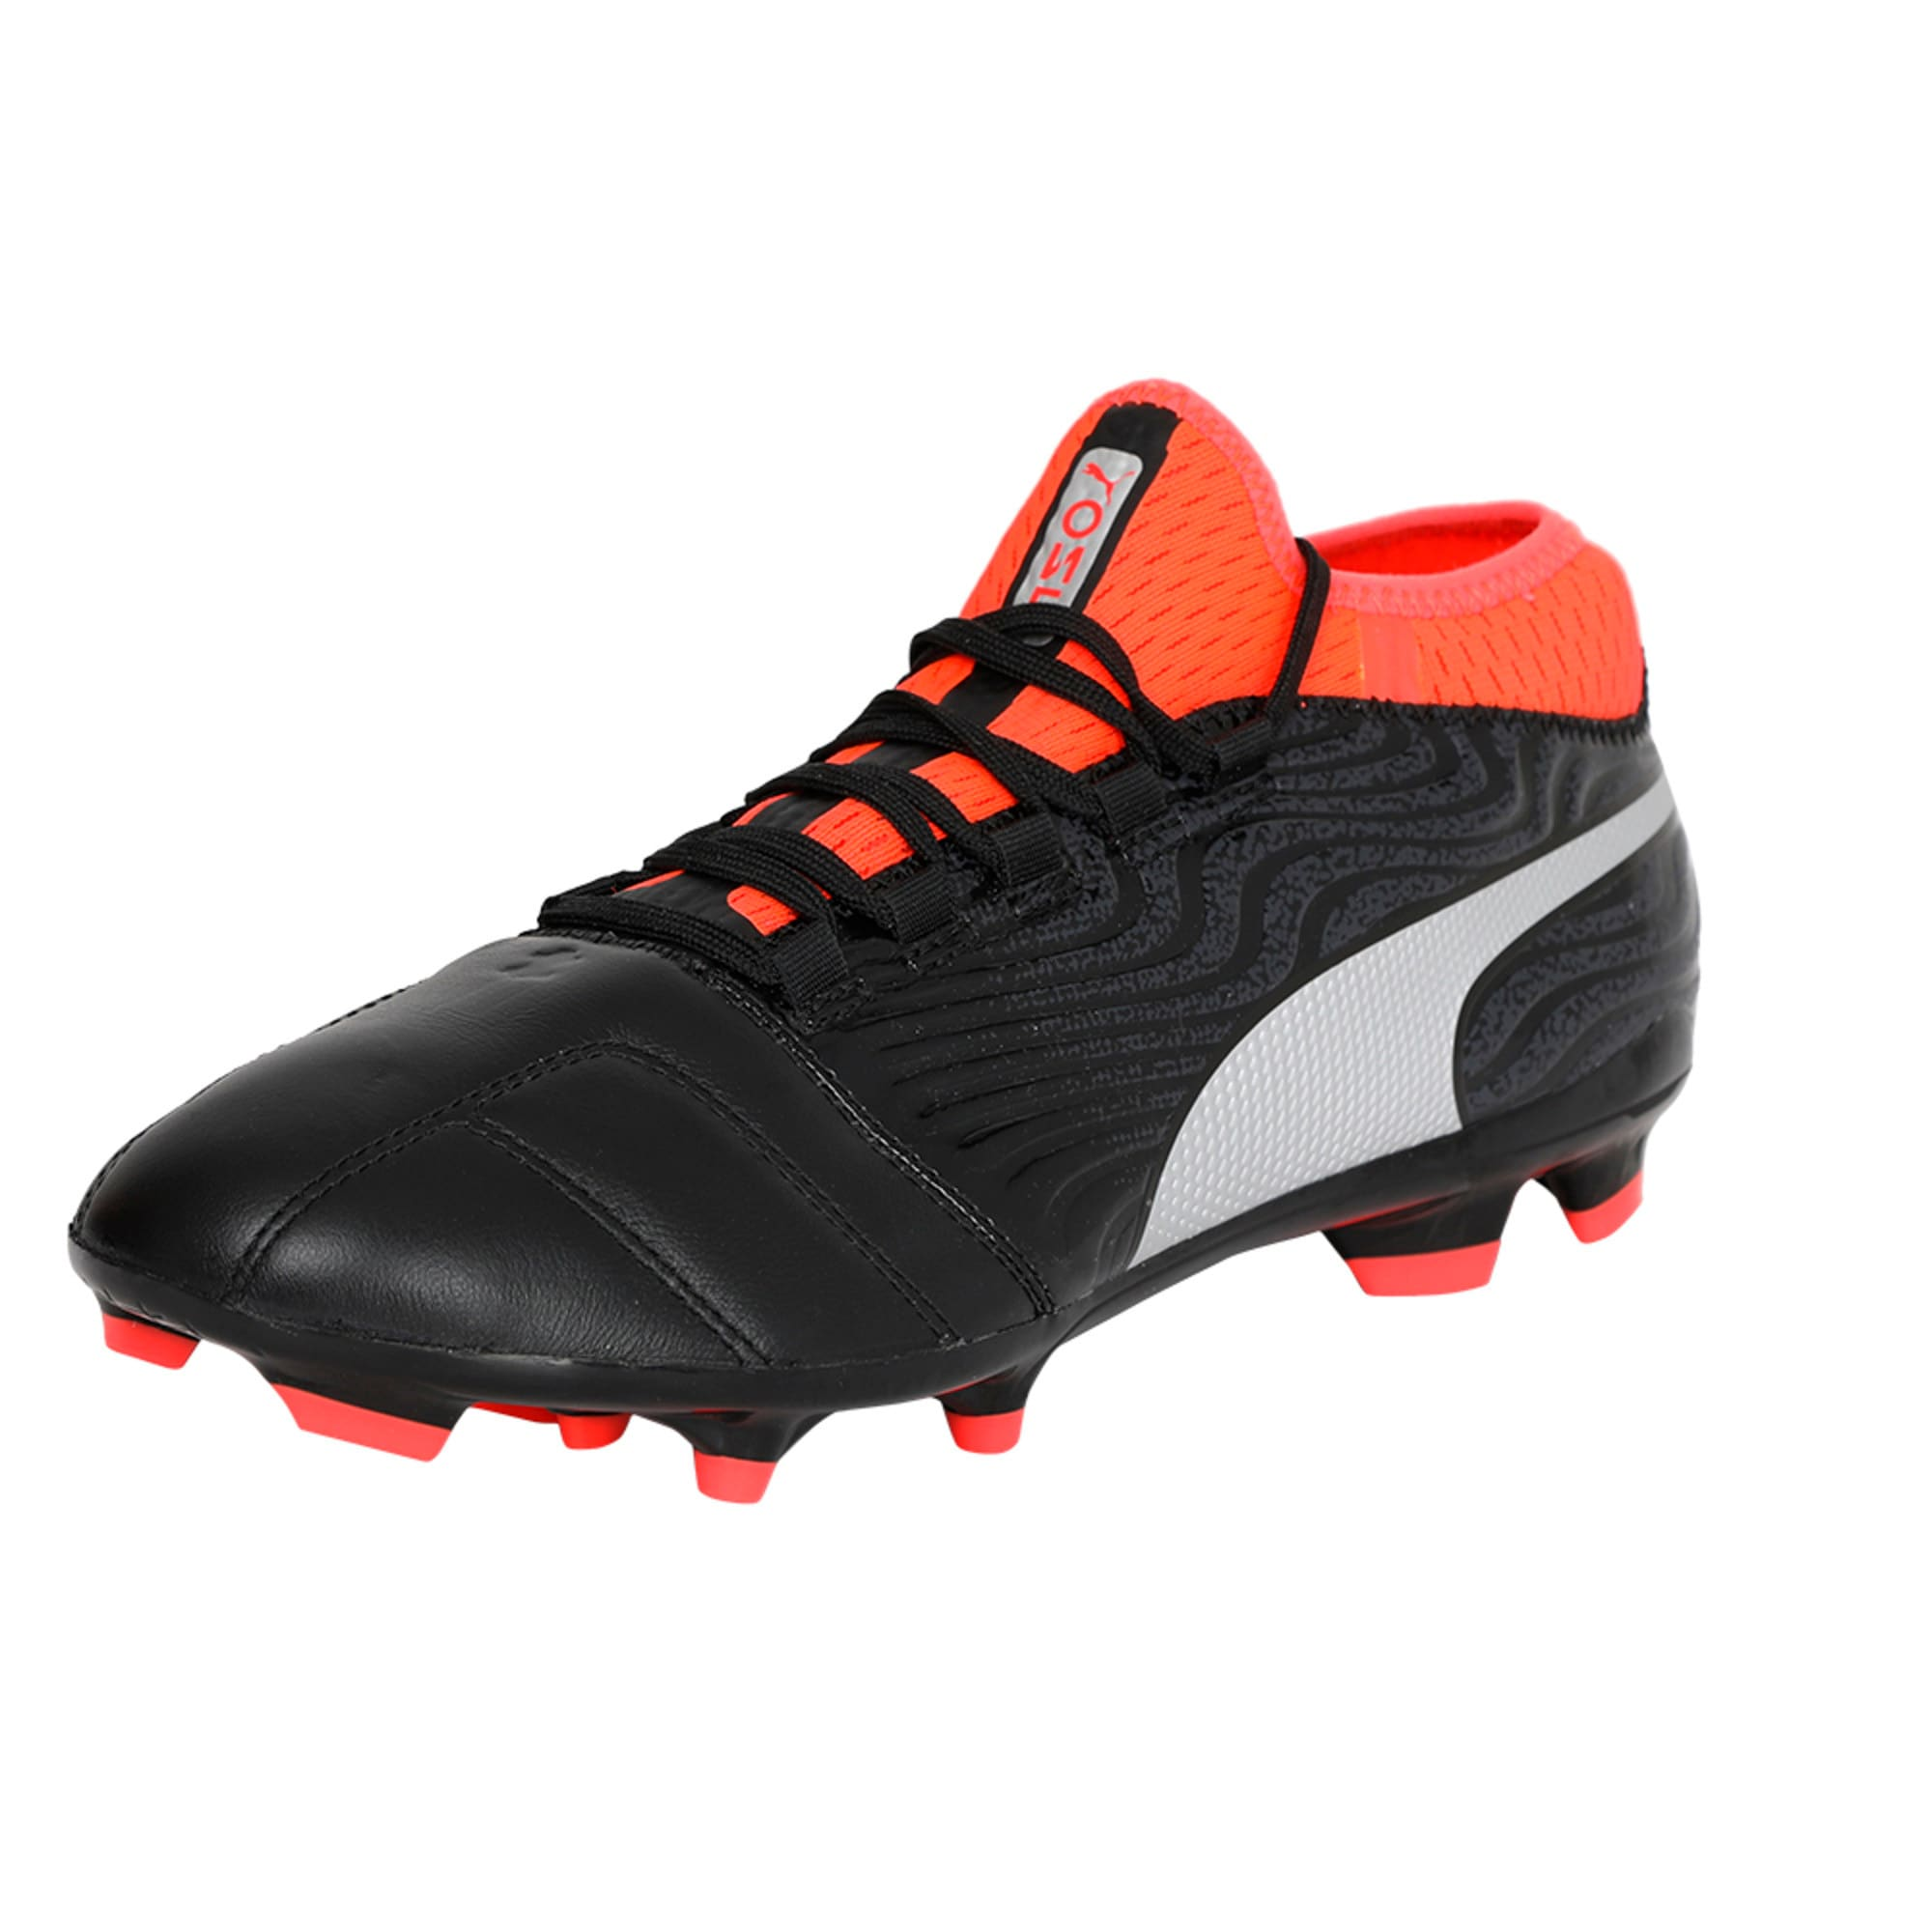 Thumbnail 1 of ONE 18.3 FG Men's Football Boots, Black-Silver-Red, medium-IND